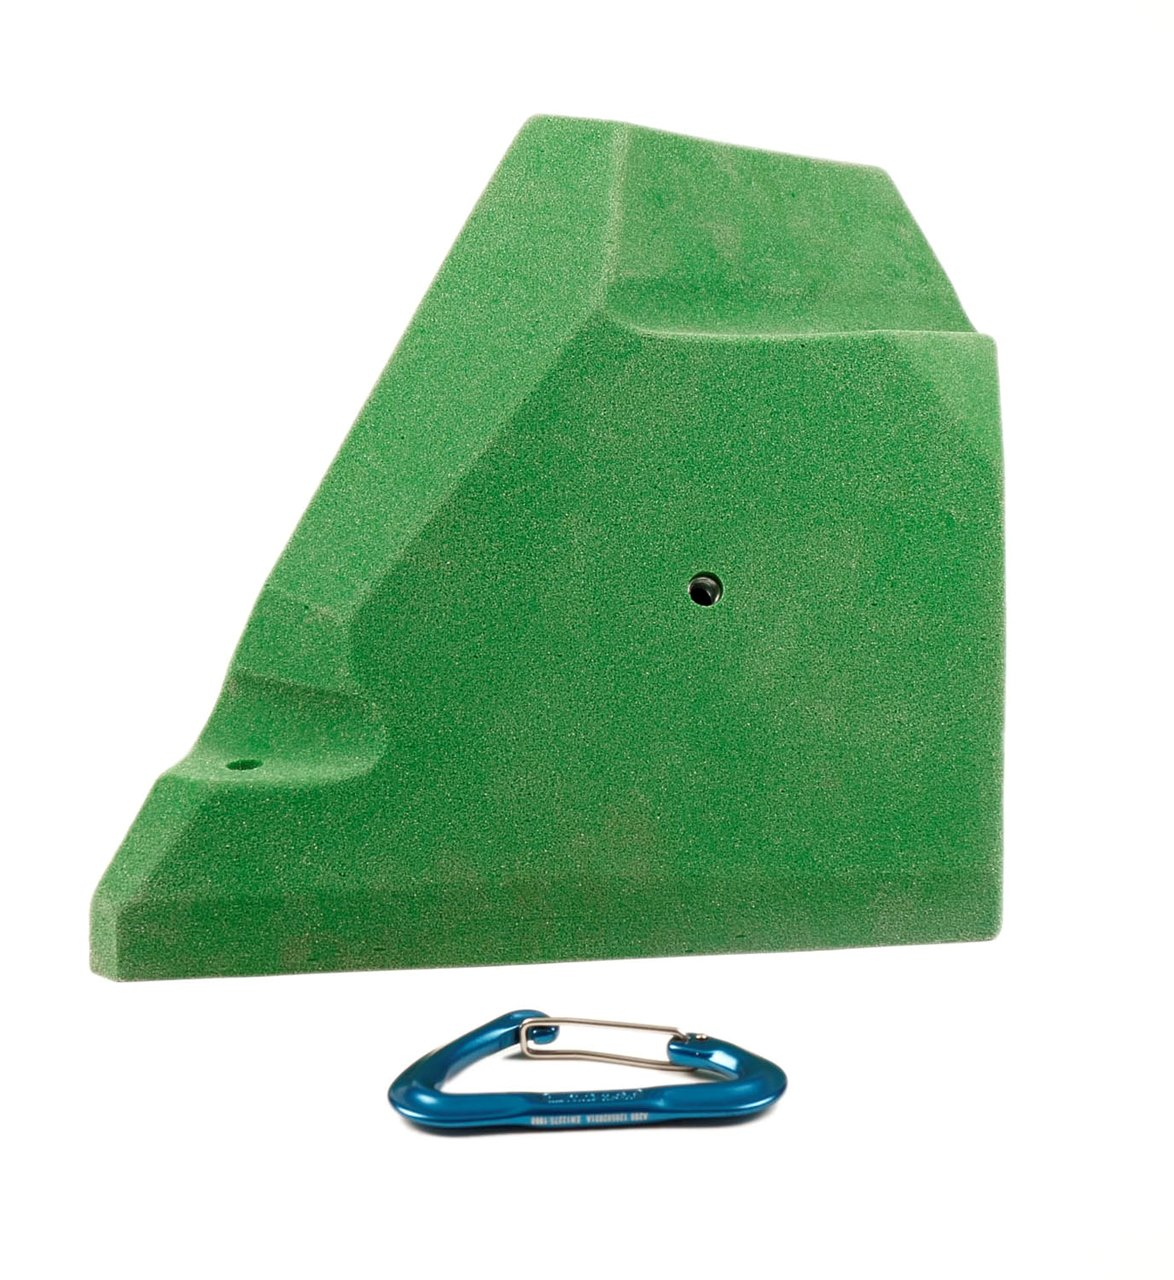 Volume #11 (Stalactite) | Climbing Holds | Green by Atomik Climbing Holds (Image #3)